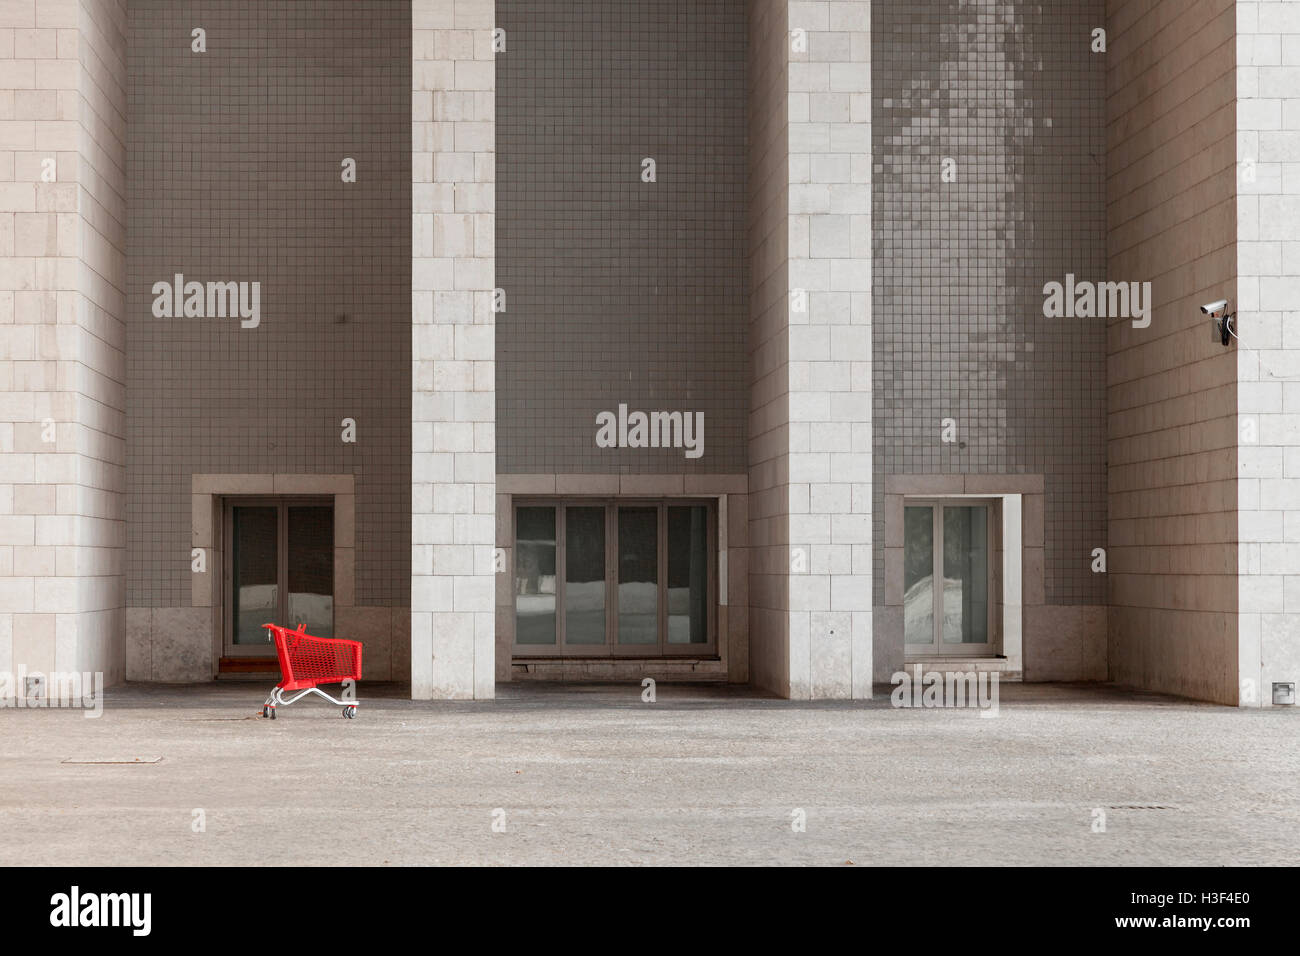 Red shopping cart in front of monumental building being observed by surveillance camera Stock Photo